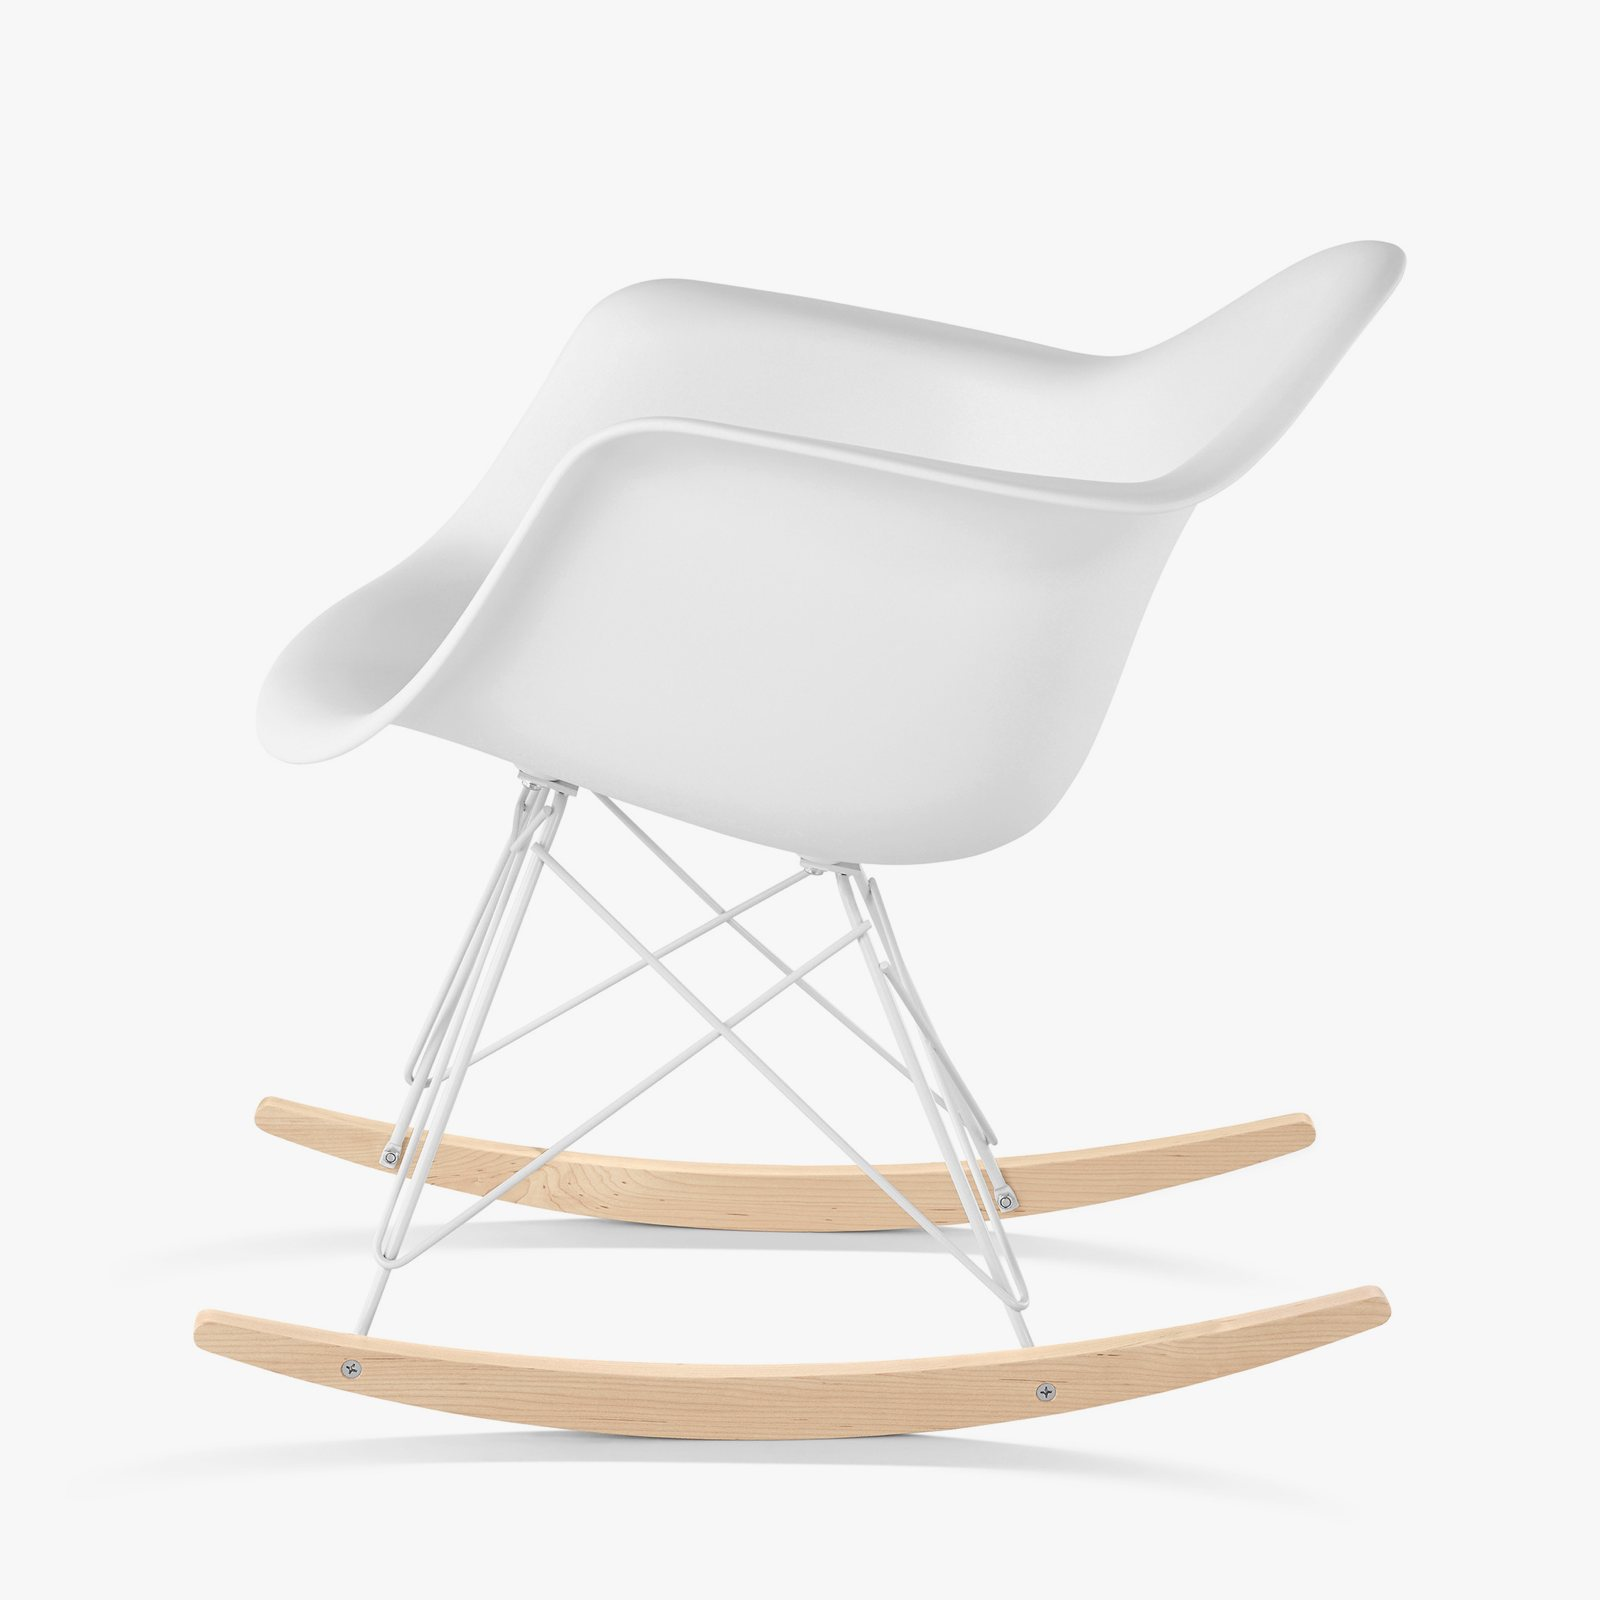 Eames Molded Plastic Armchair Rocker Base by Charles & Ray Eames